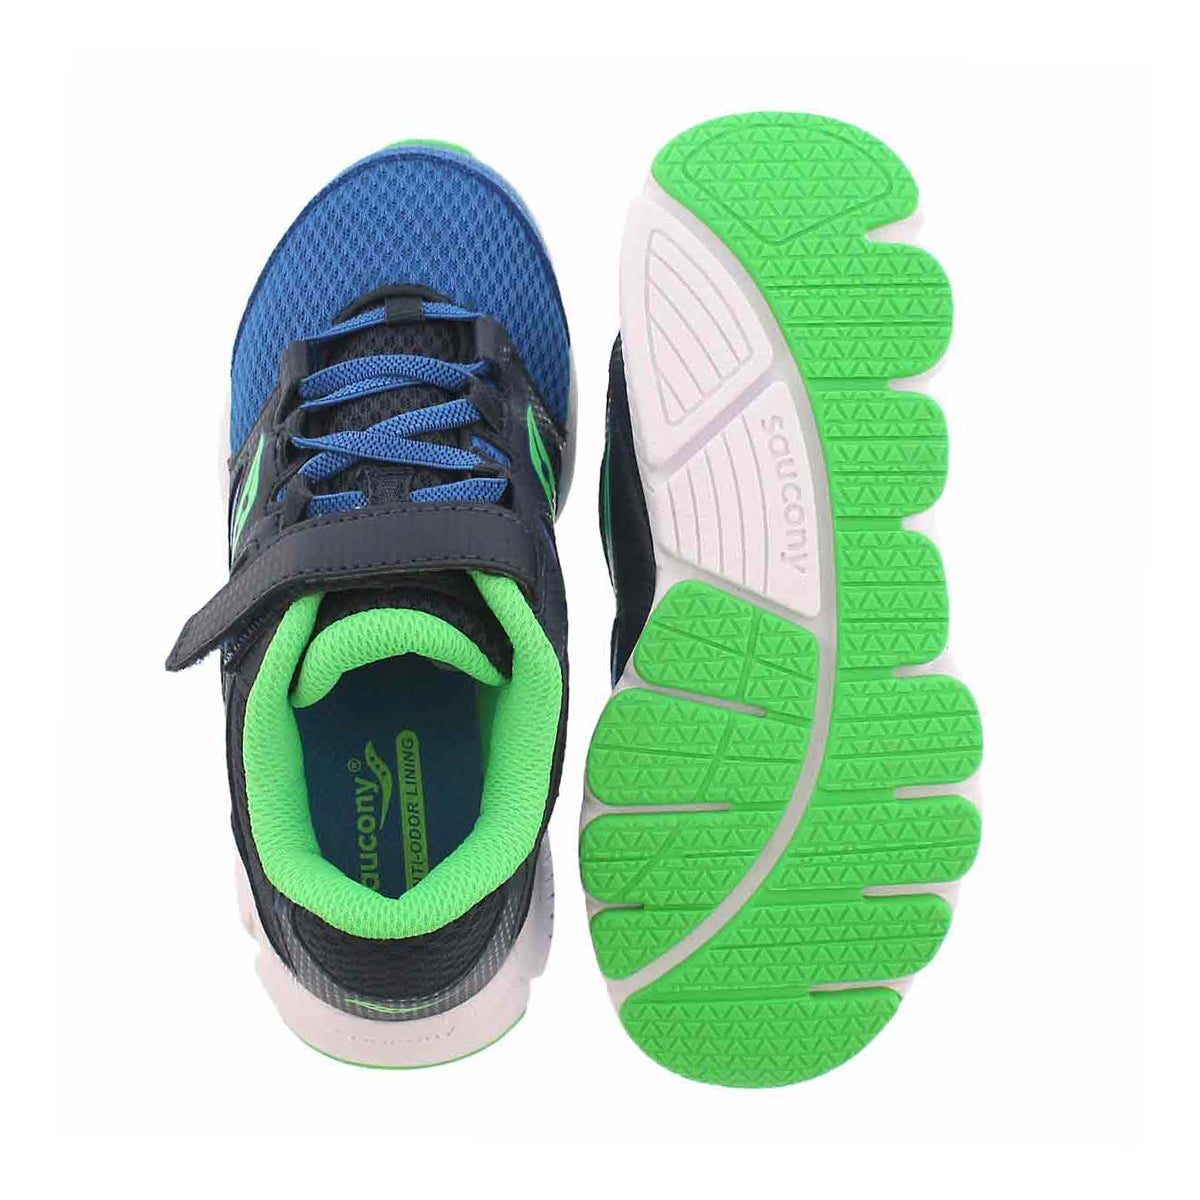 Bys Kotaro 4 nvy/grn lace up runner